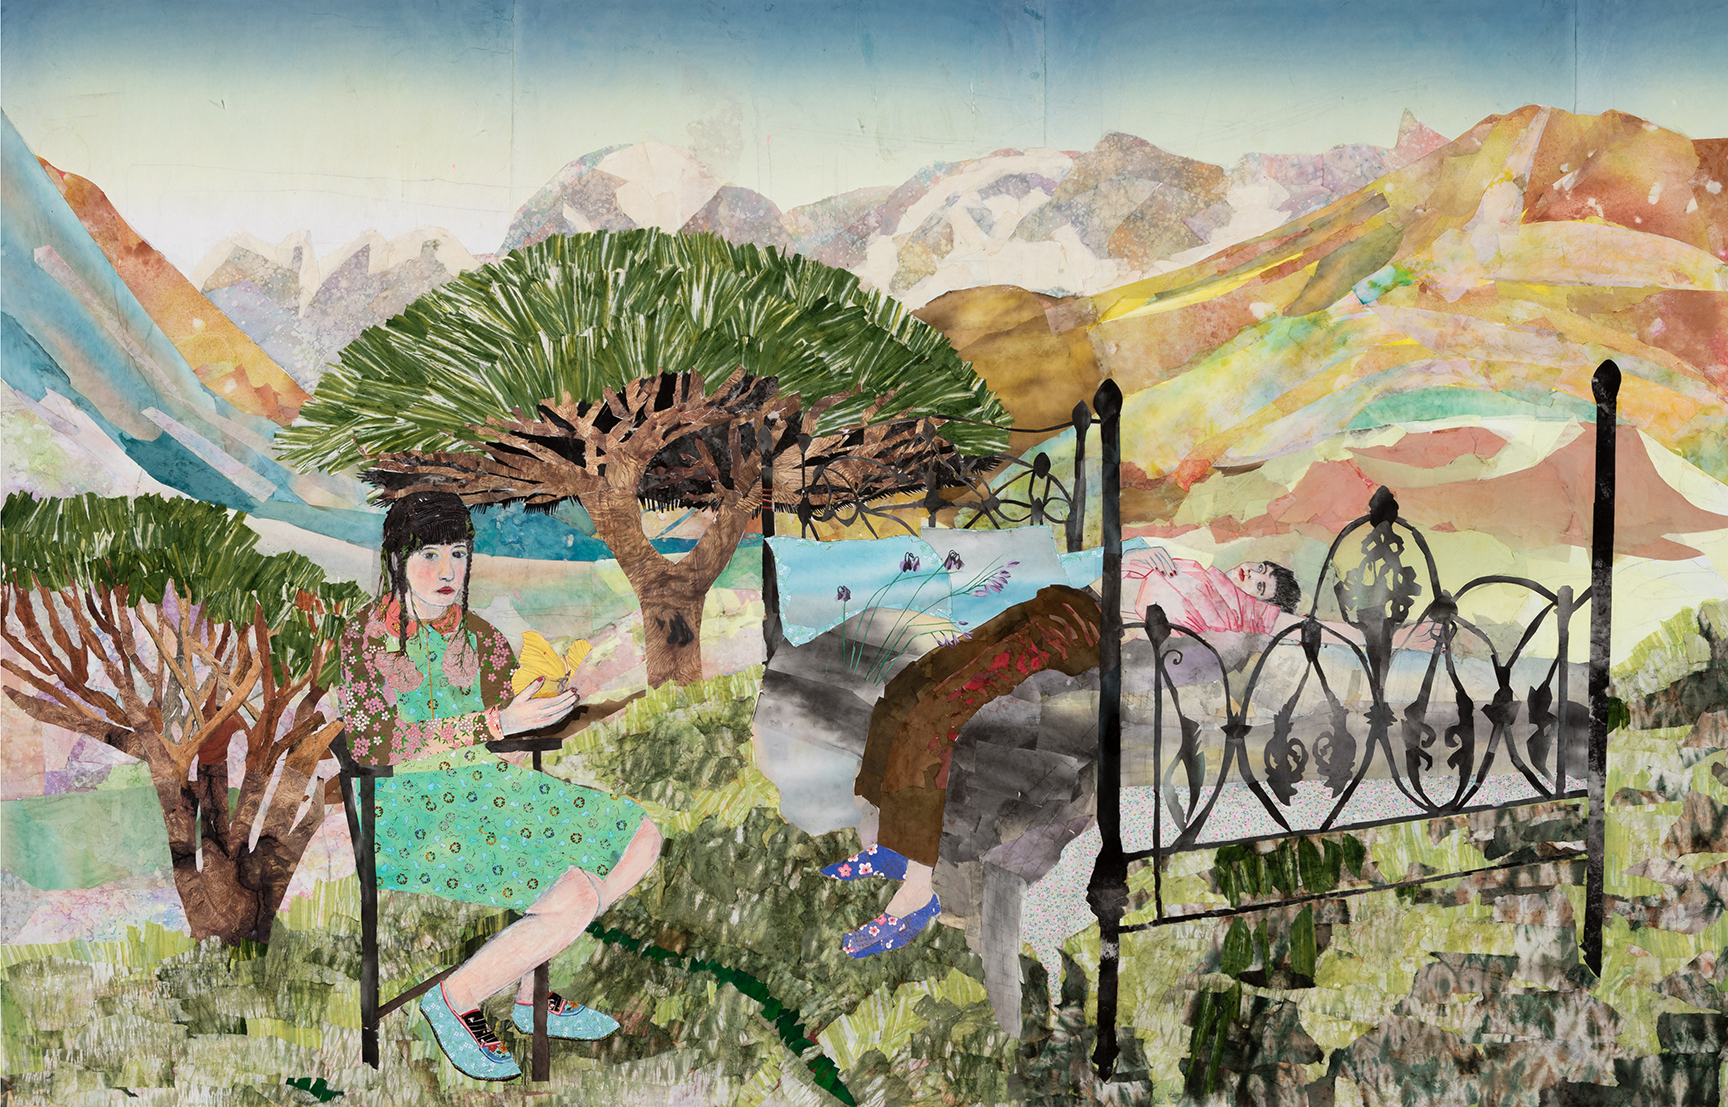 María Berrío,  Anemochory , 2019, collage with Japanese paper and watercolor paint, 77 x 120 inches. Courtesy the artist and Kohn Gallery.